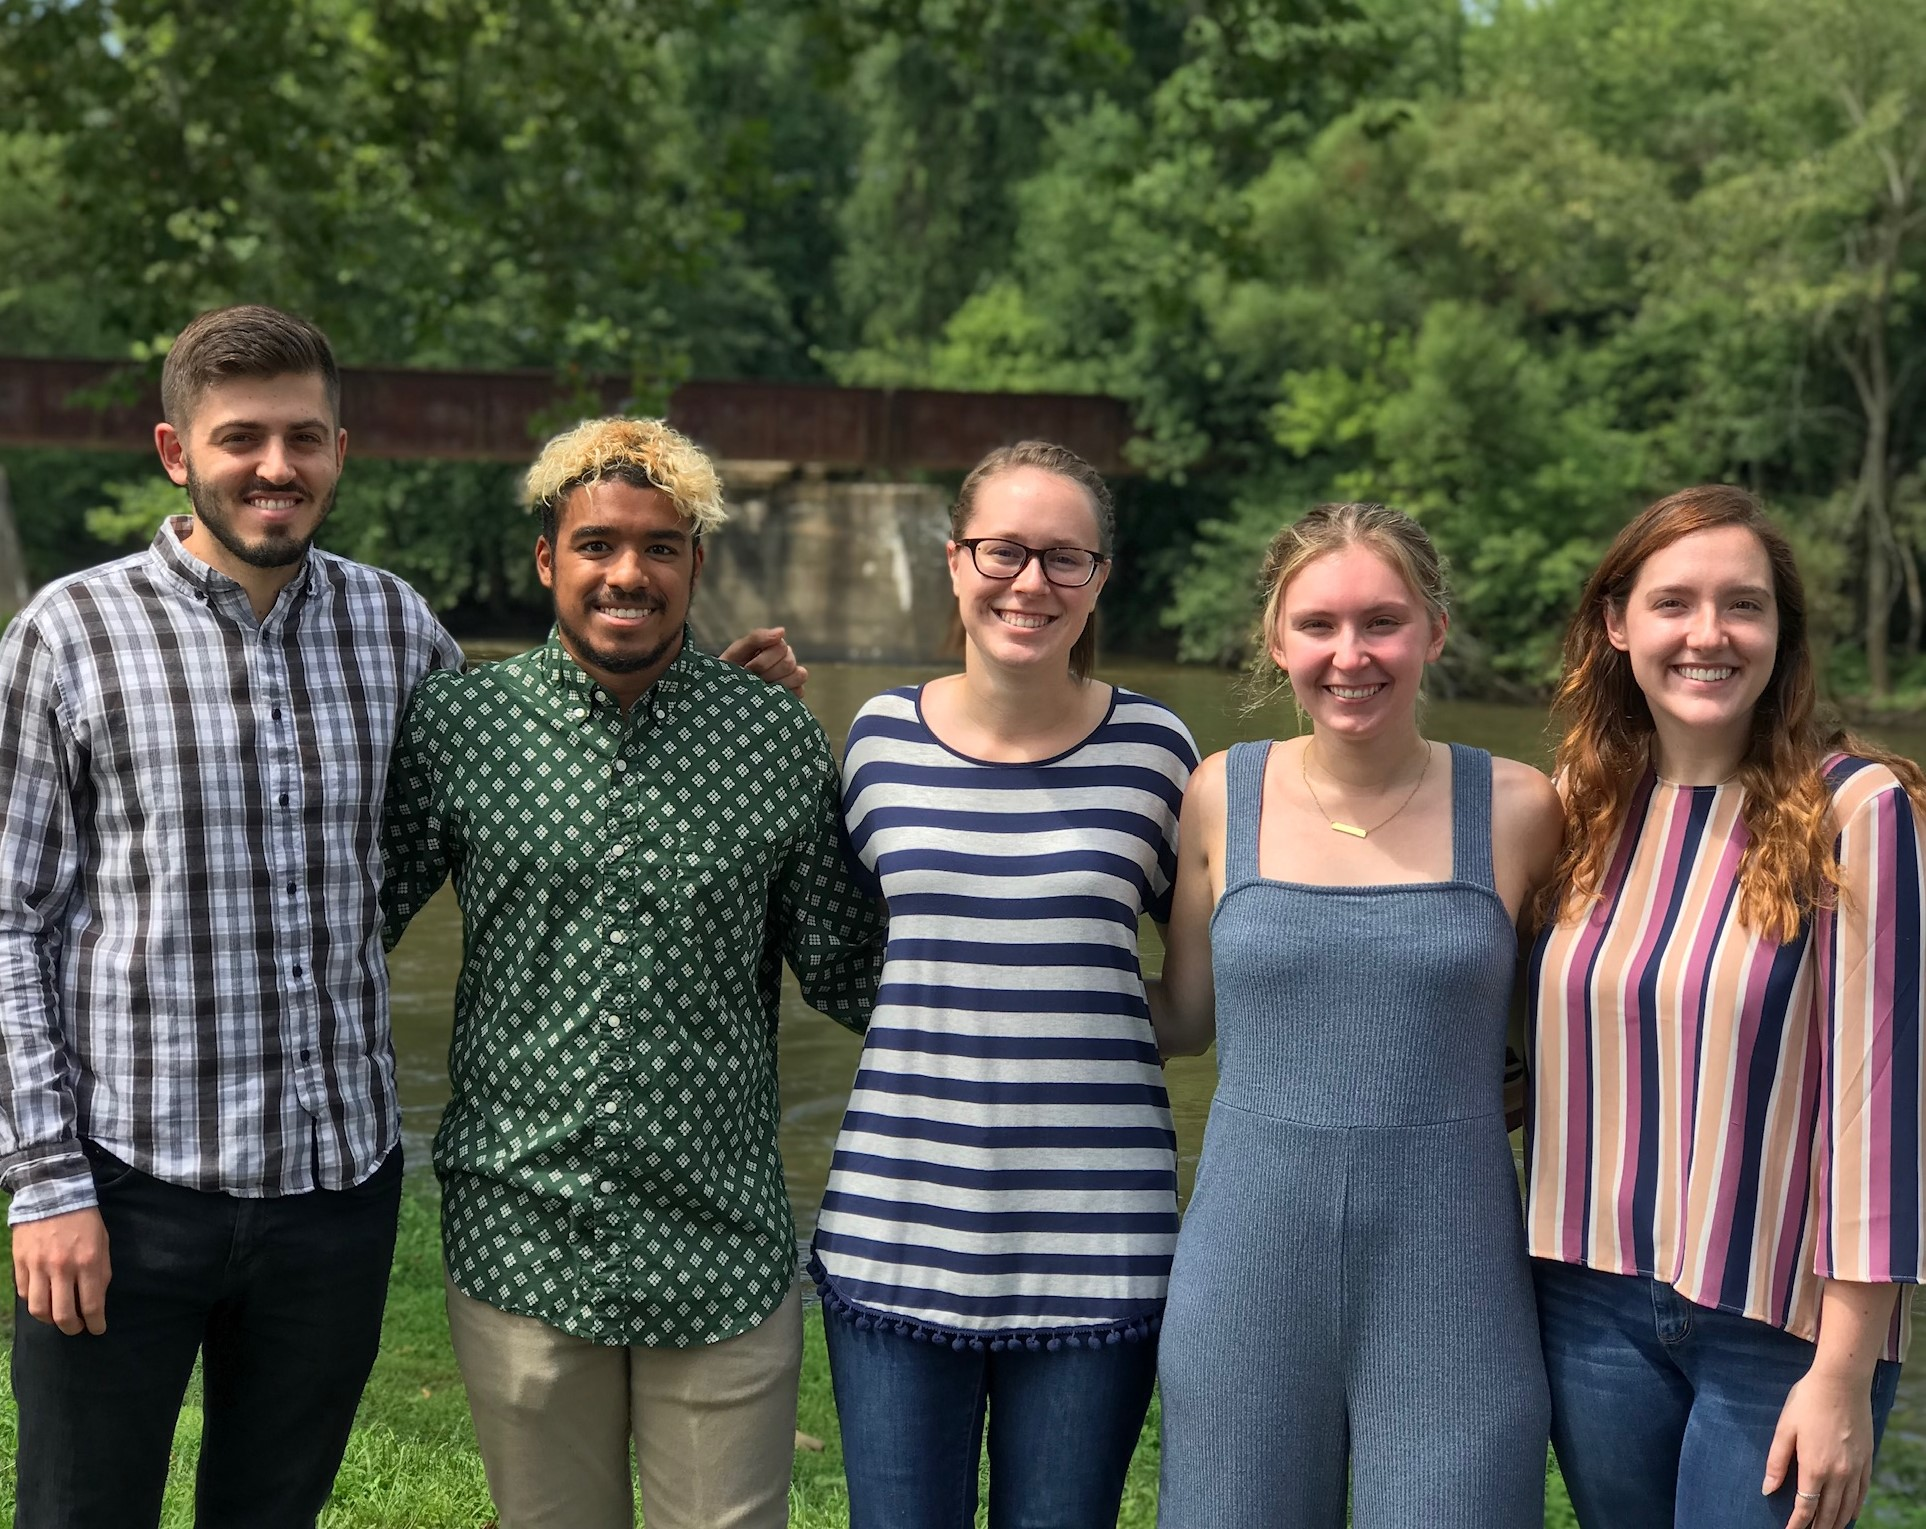 2019 summer interns - Click the button below to learn more about our Internship Program.